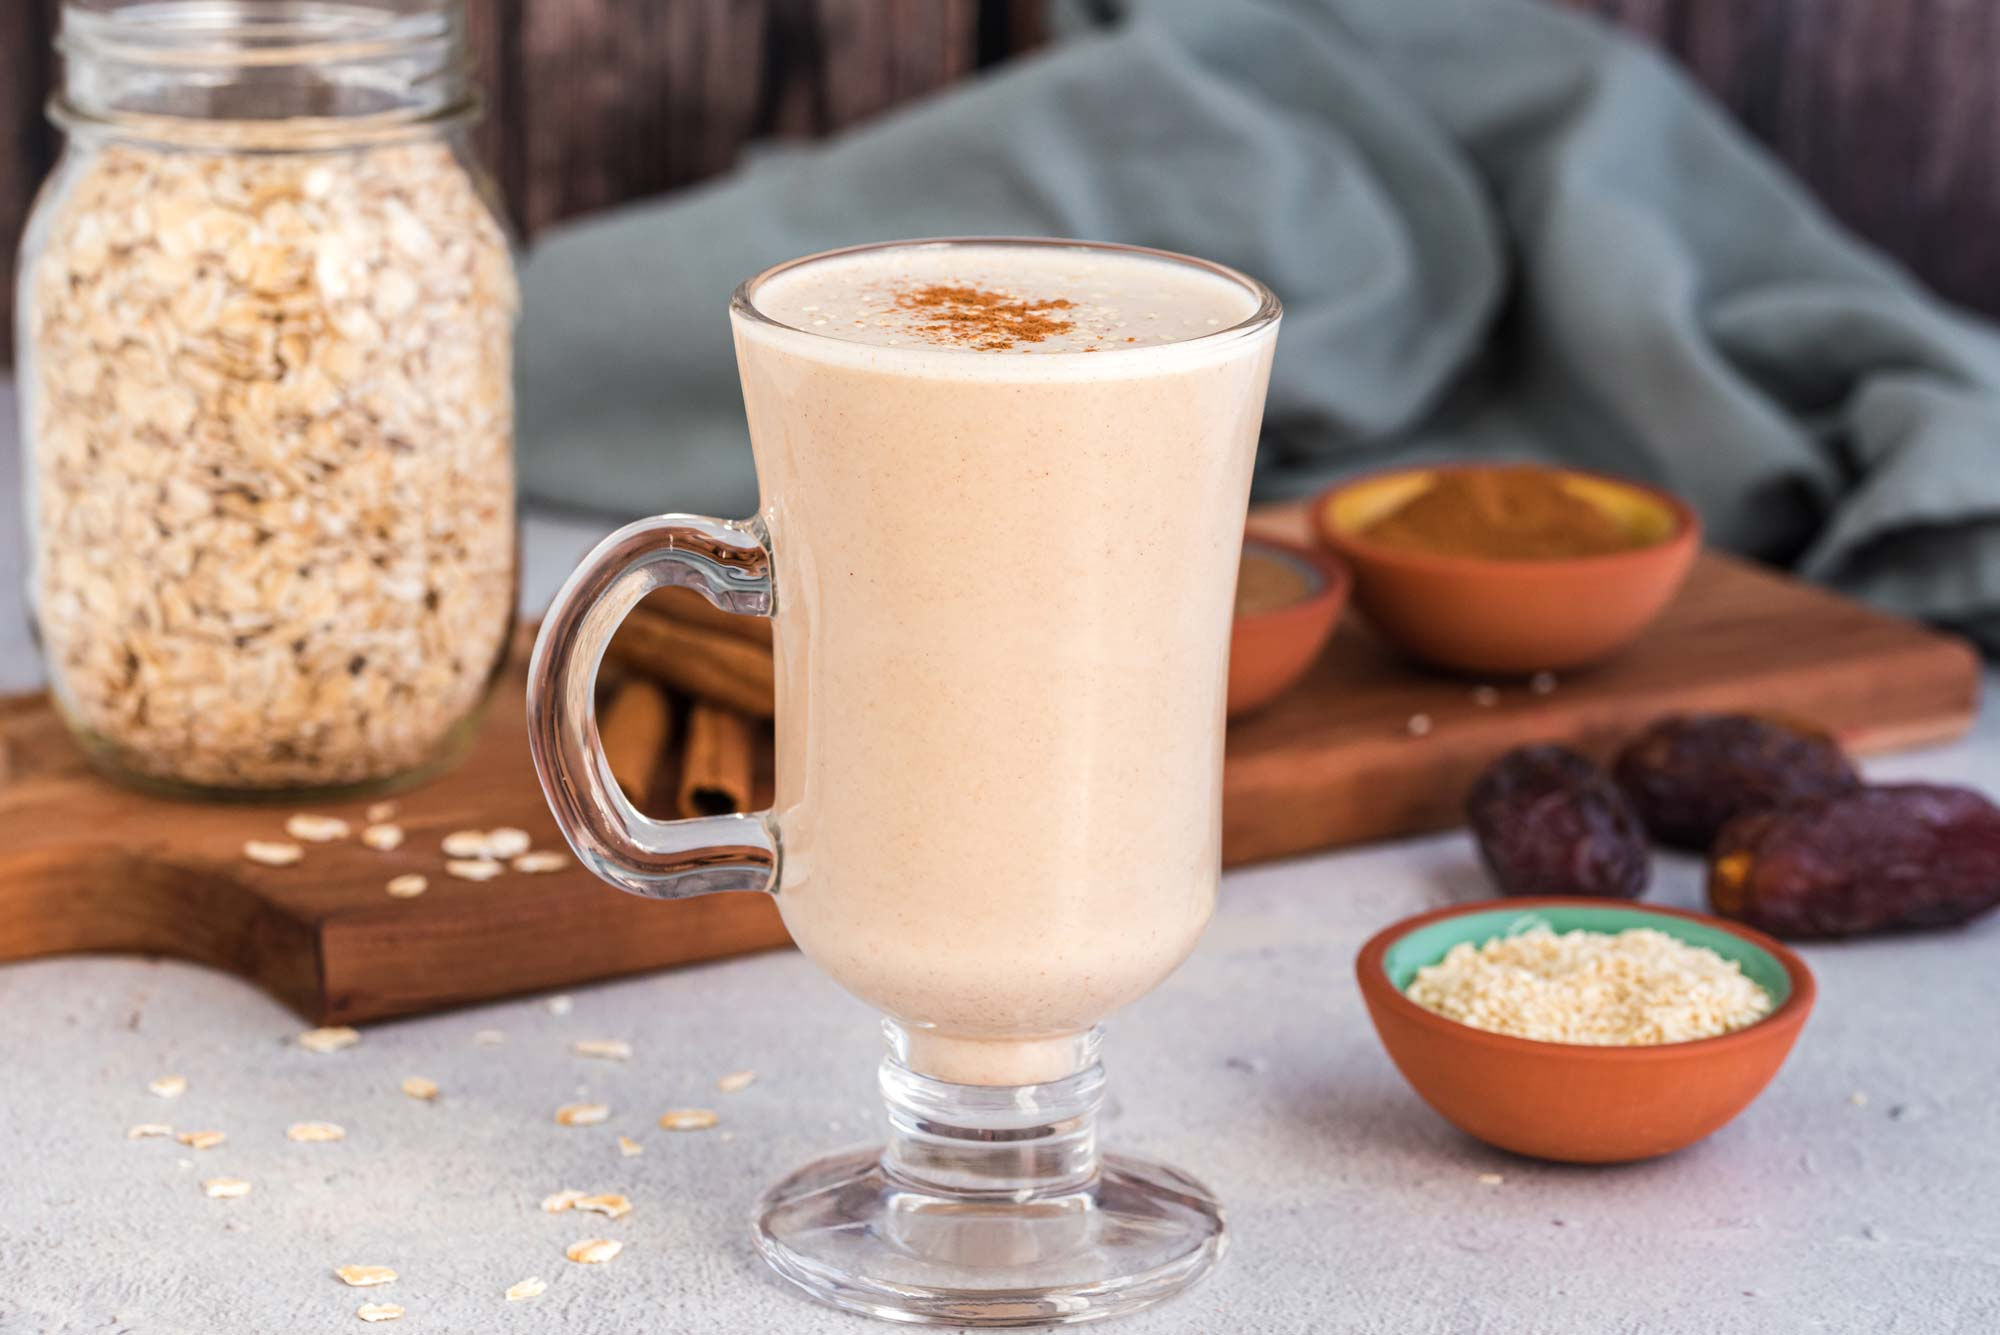 sweet and nutty oat milk with cinnamon in glass